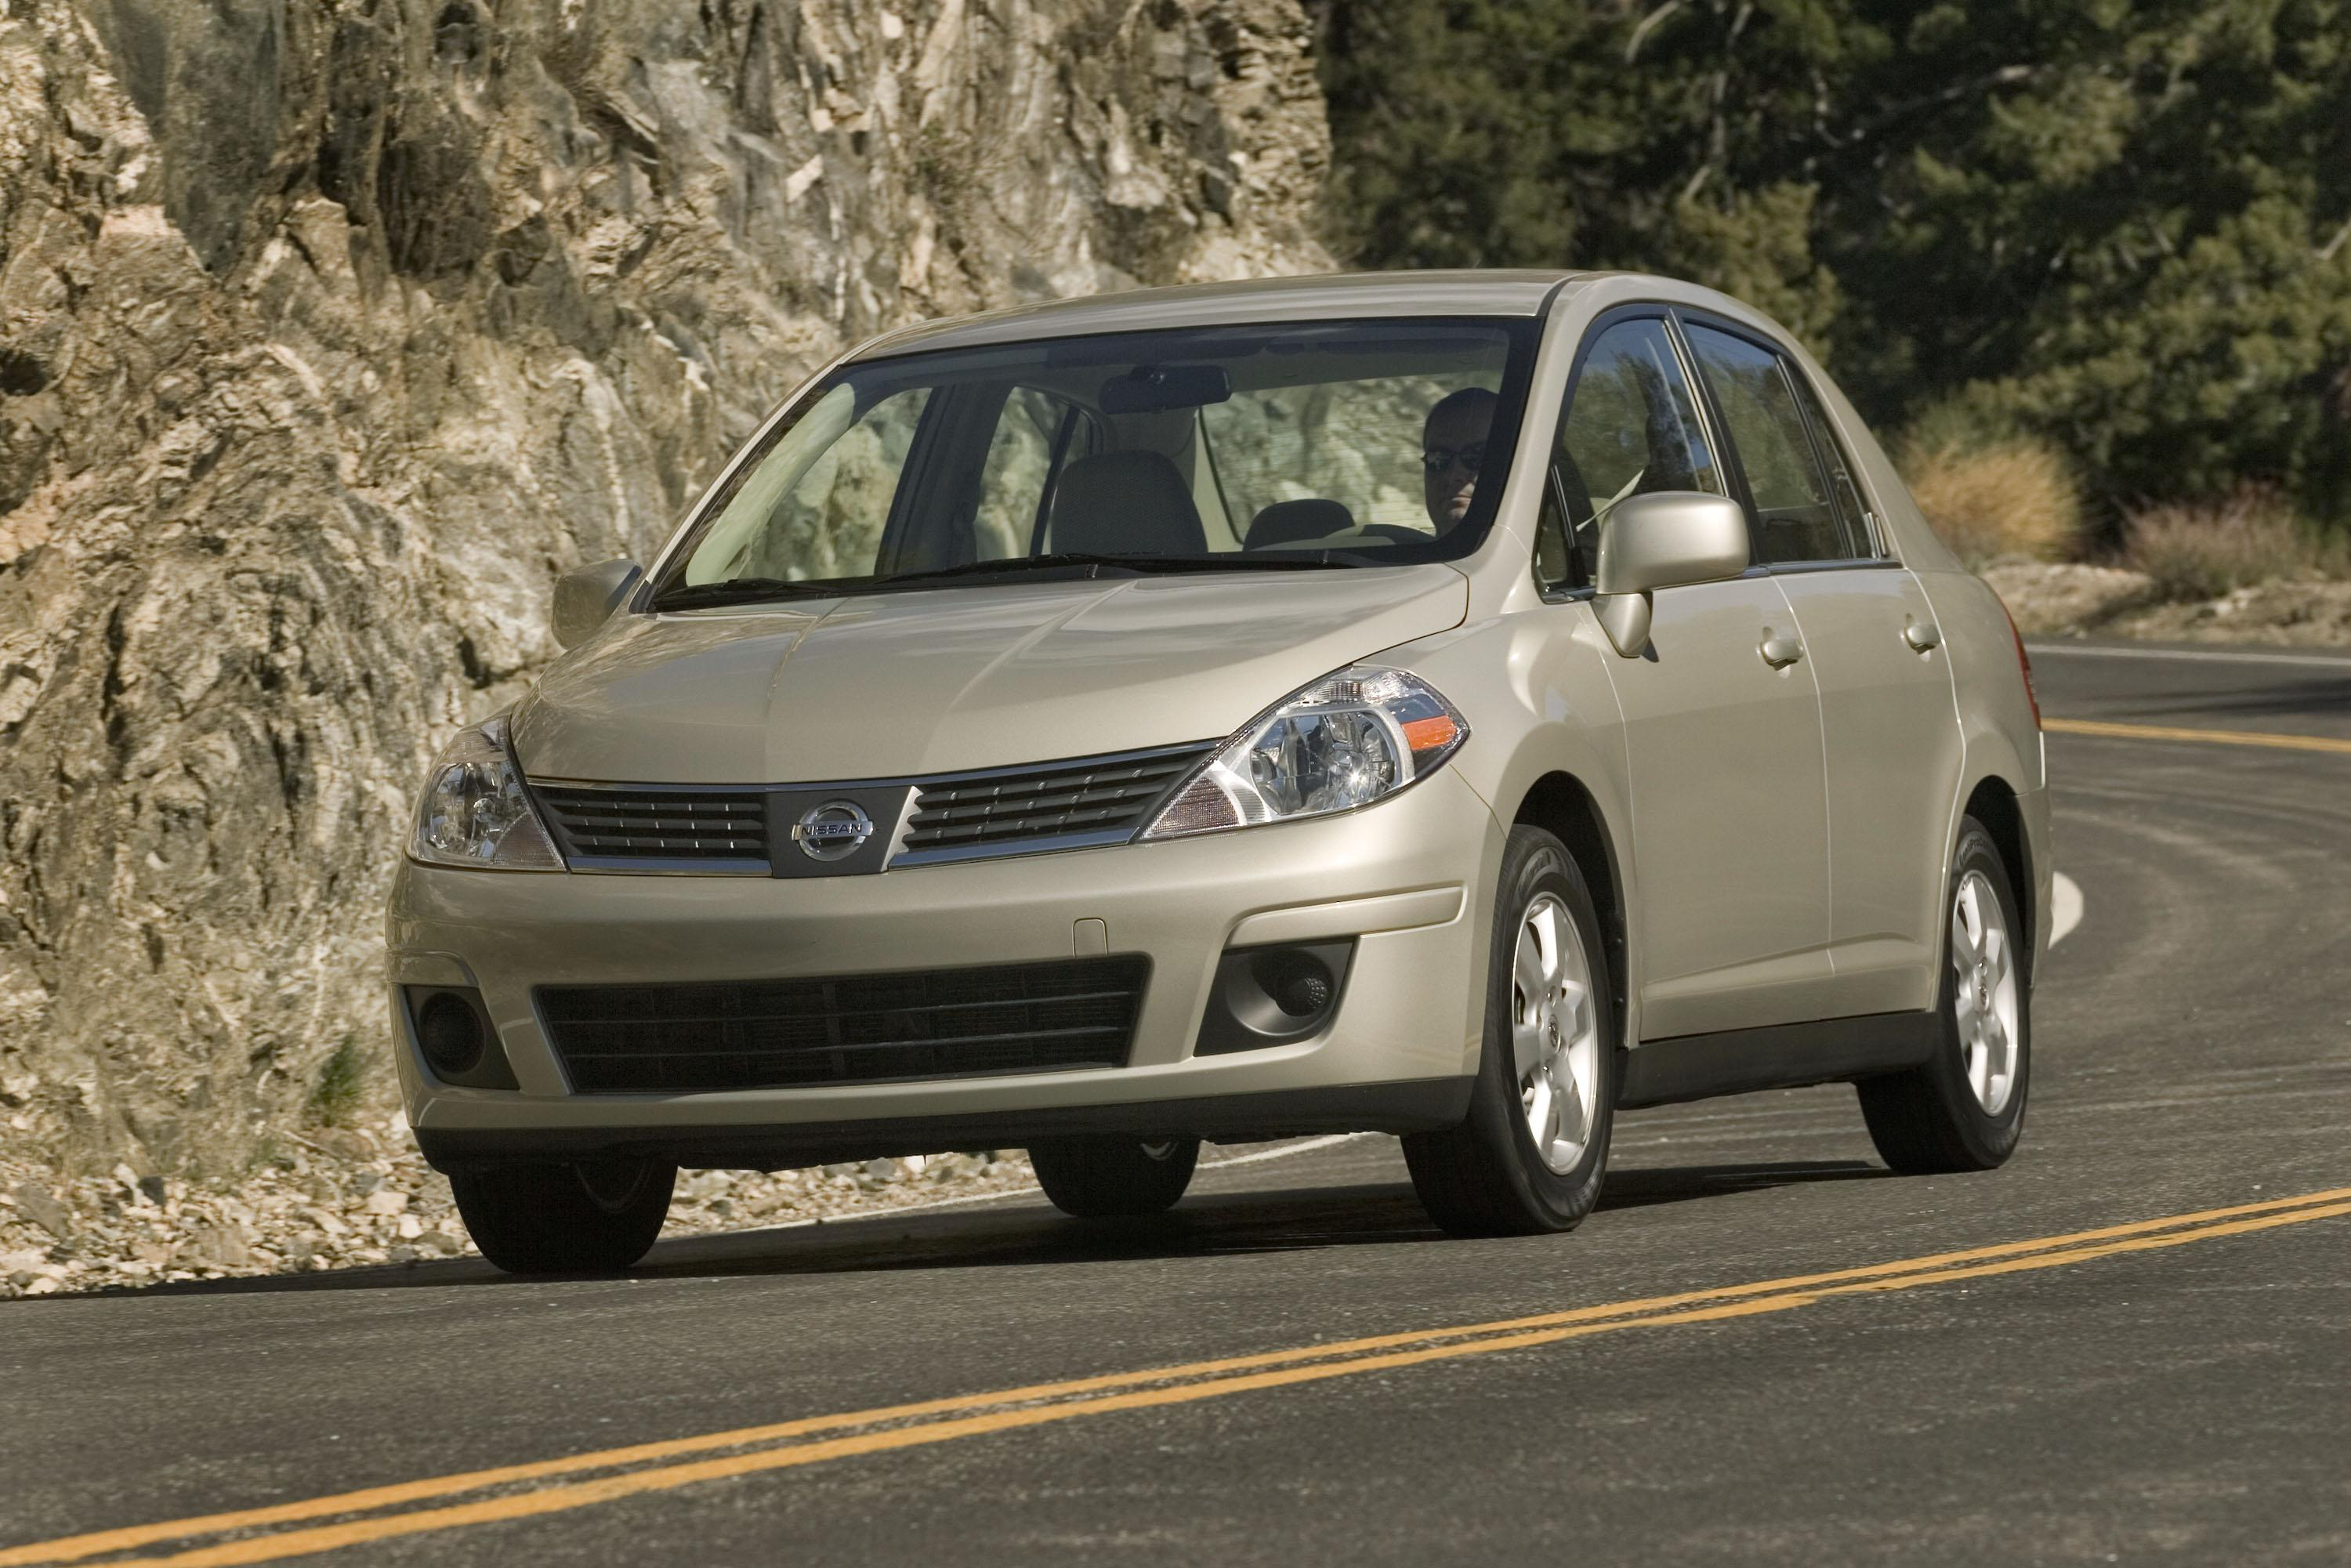 2009 Nissan Versa Lowest Priced New Car In The U S Picture Top Speed